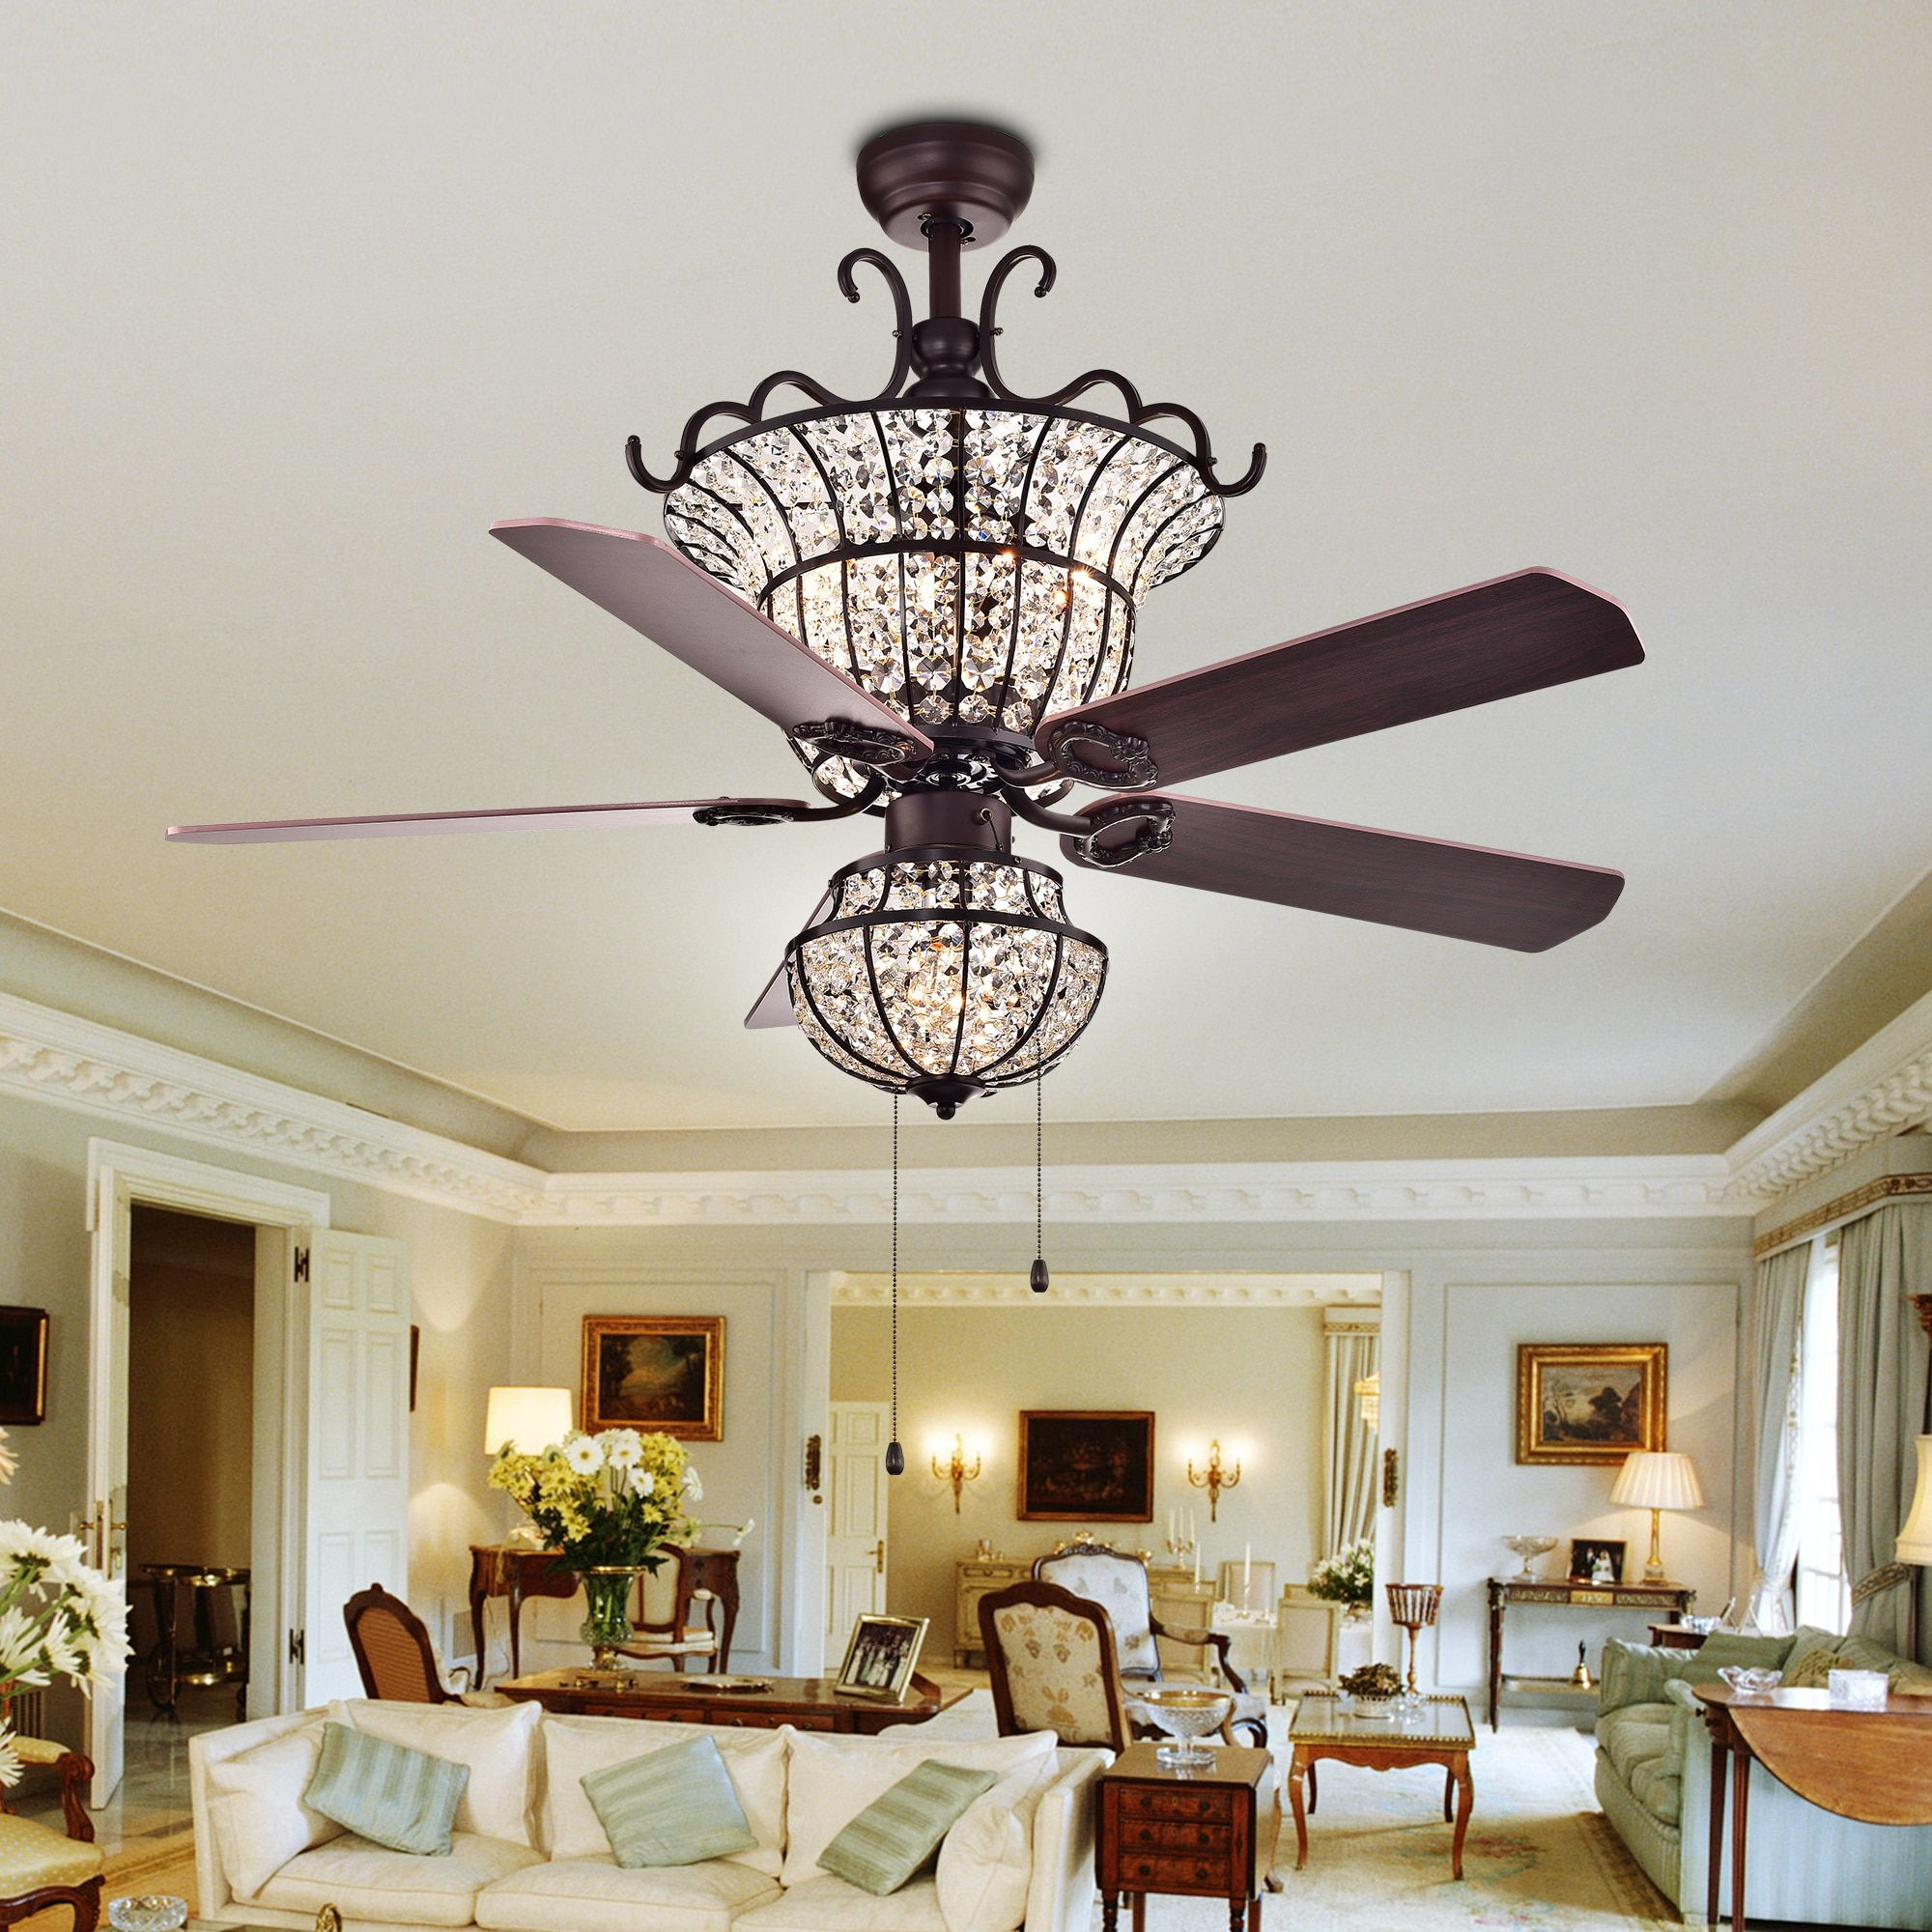 deals ceilings the com inch overstock on black light fan metal with crystals mirabelle pin and ceiling shopping blade fans best crystal lighted